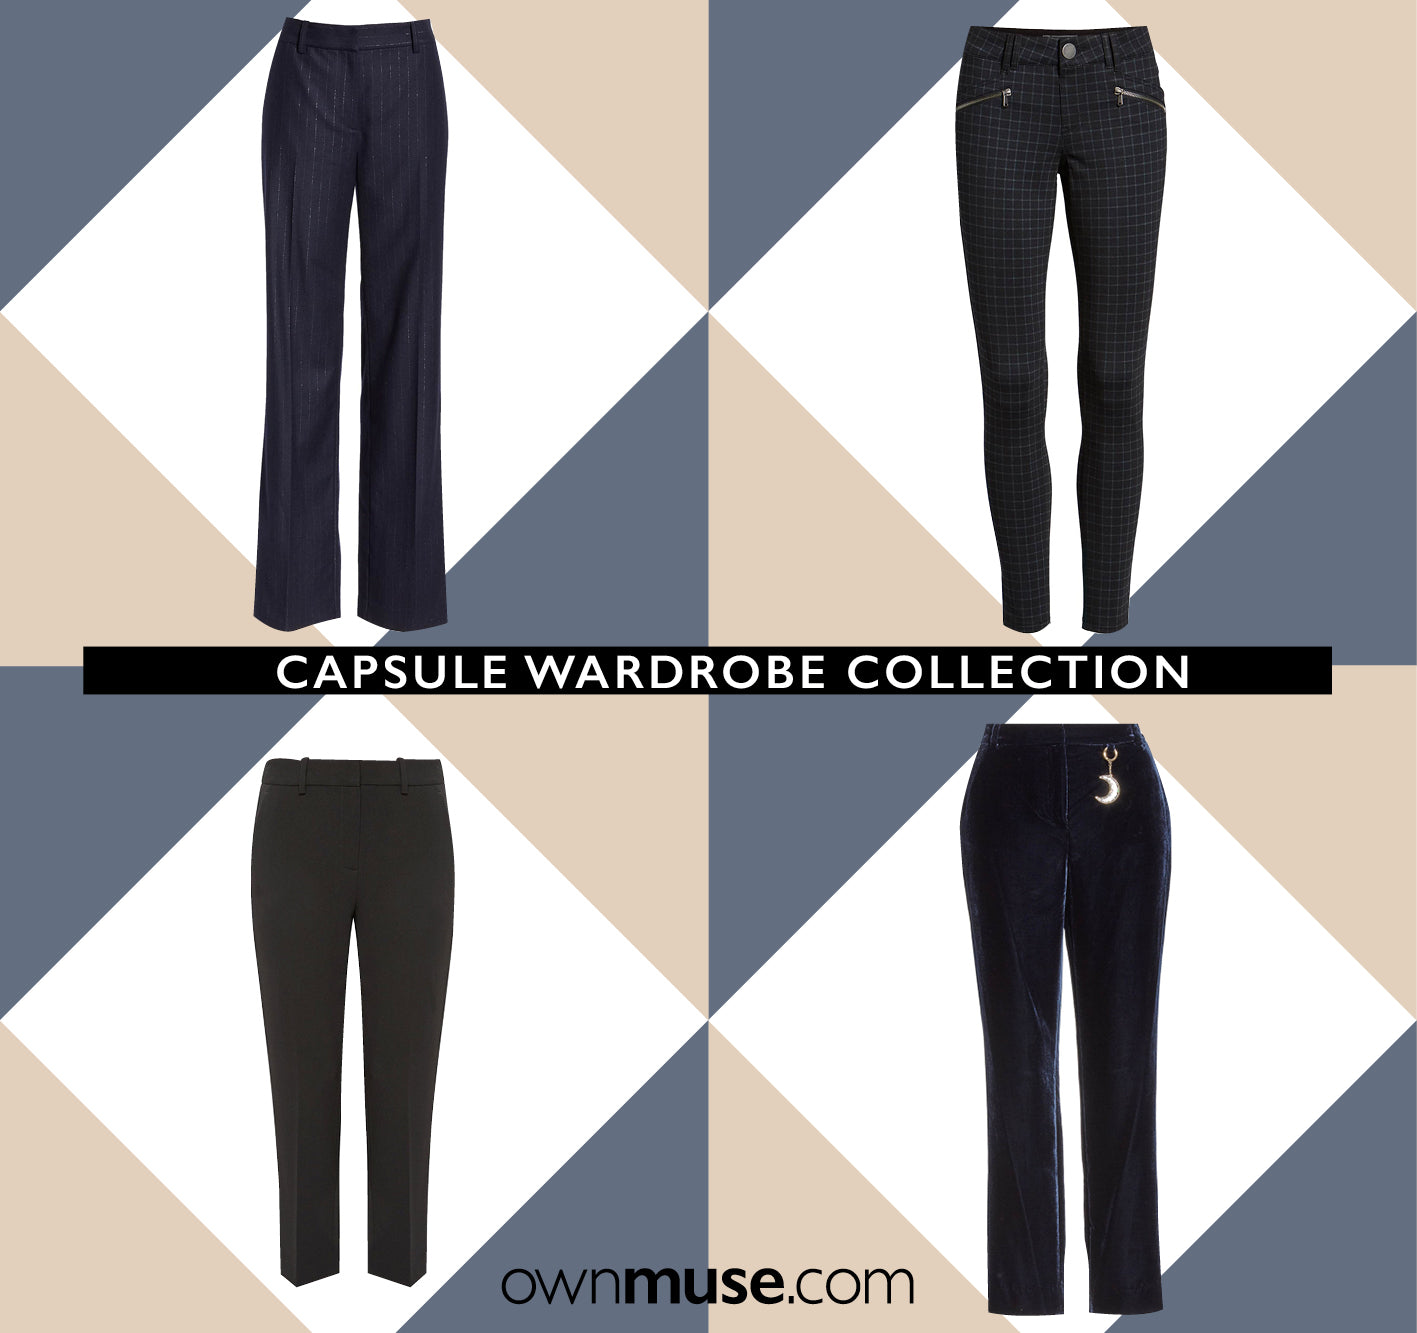 Capsule wardrobe collection trousers pants